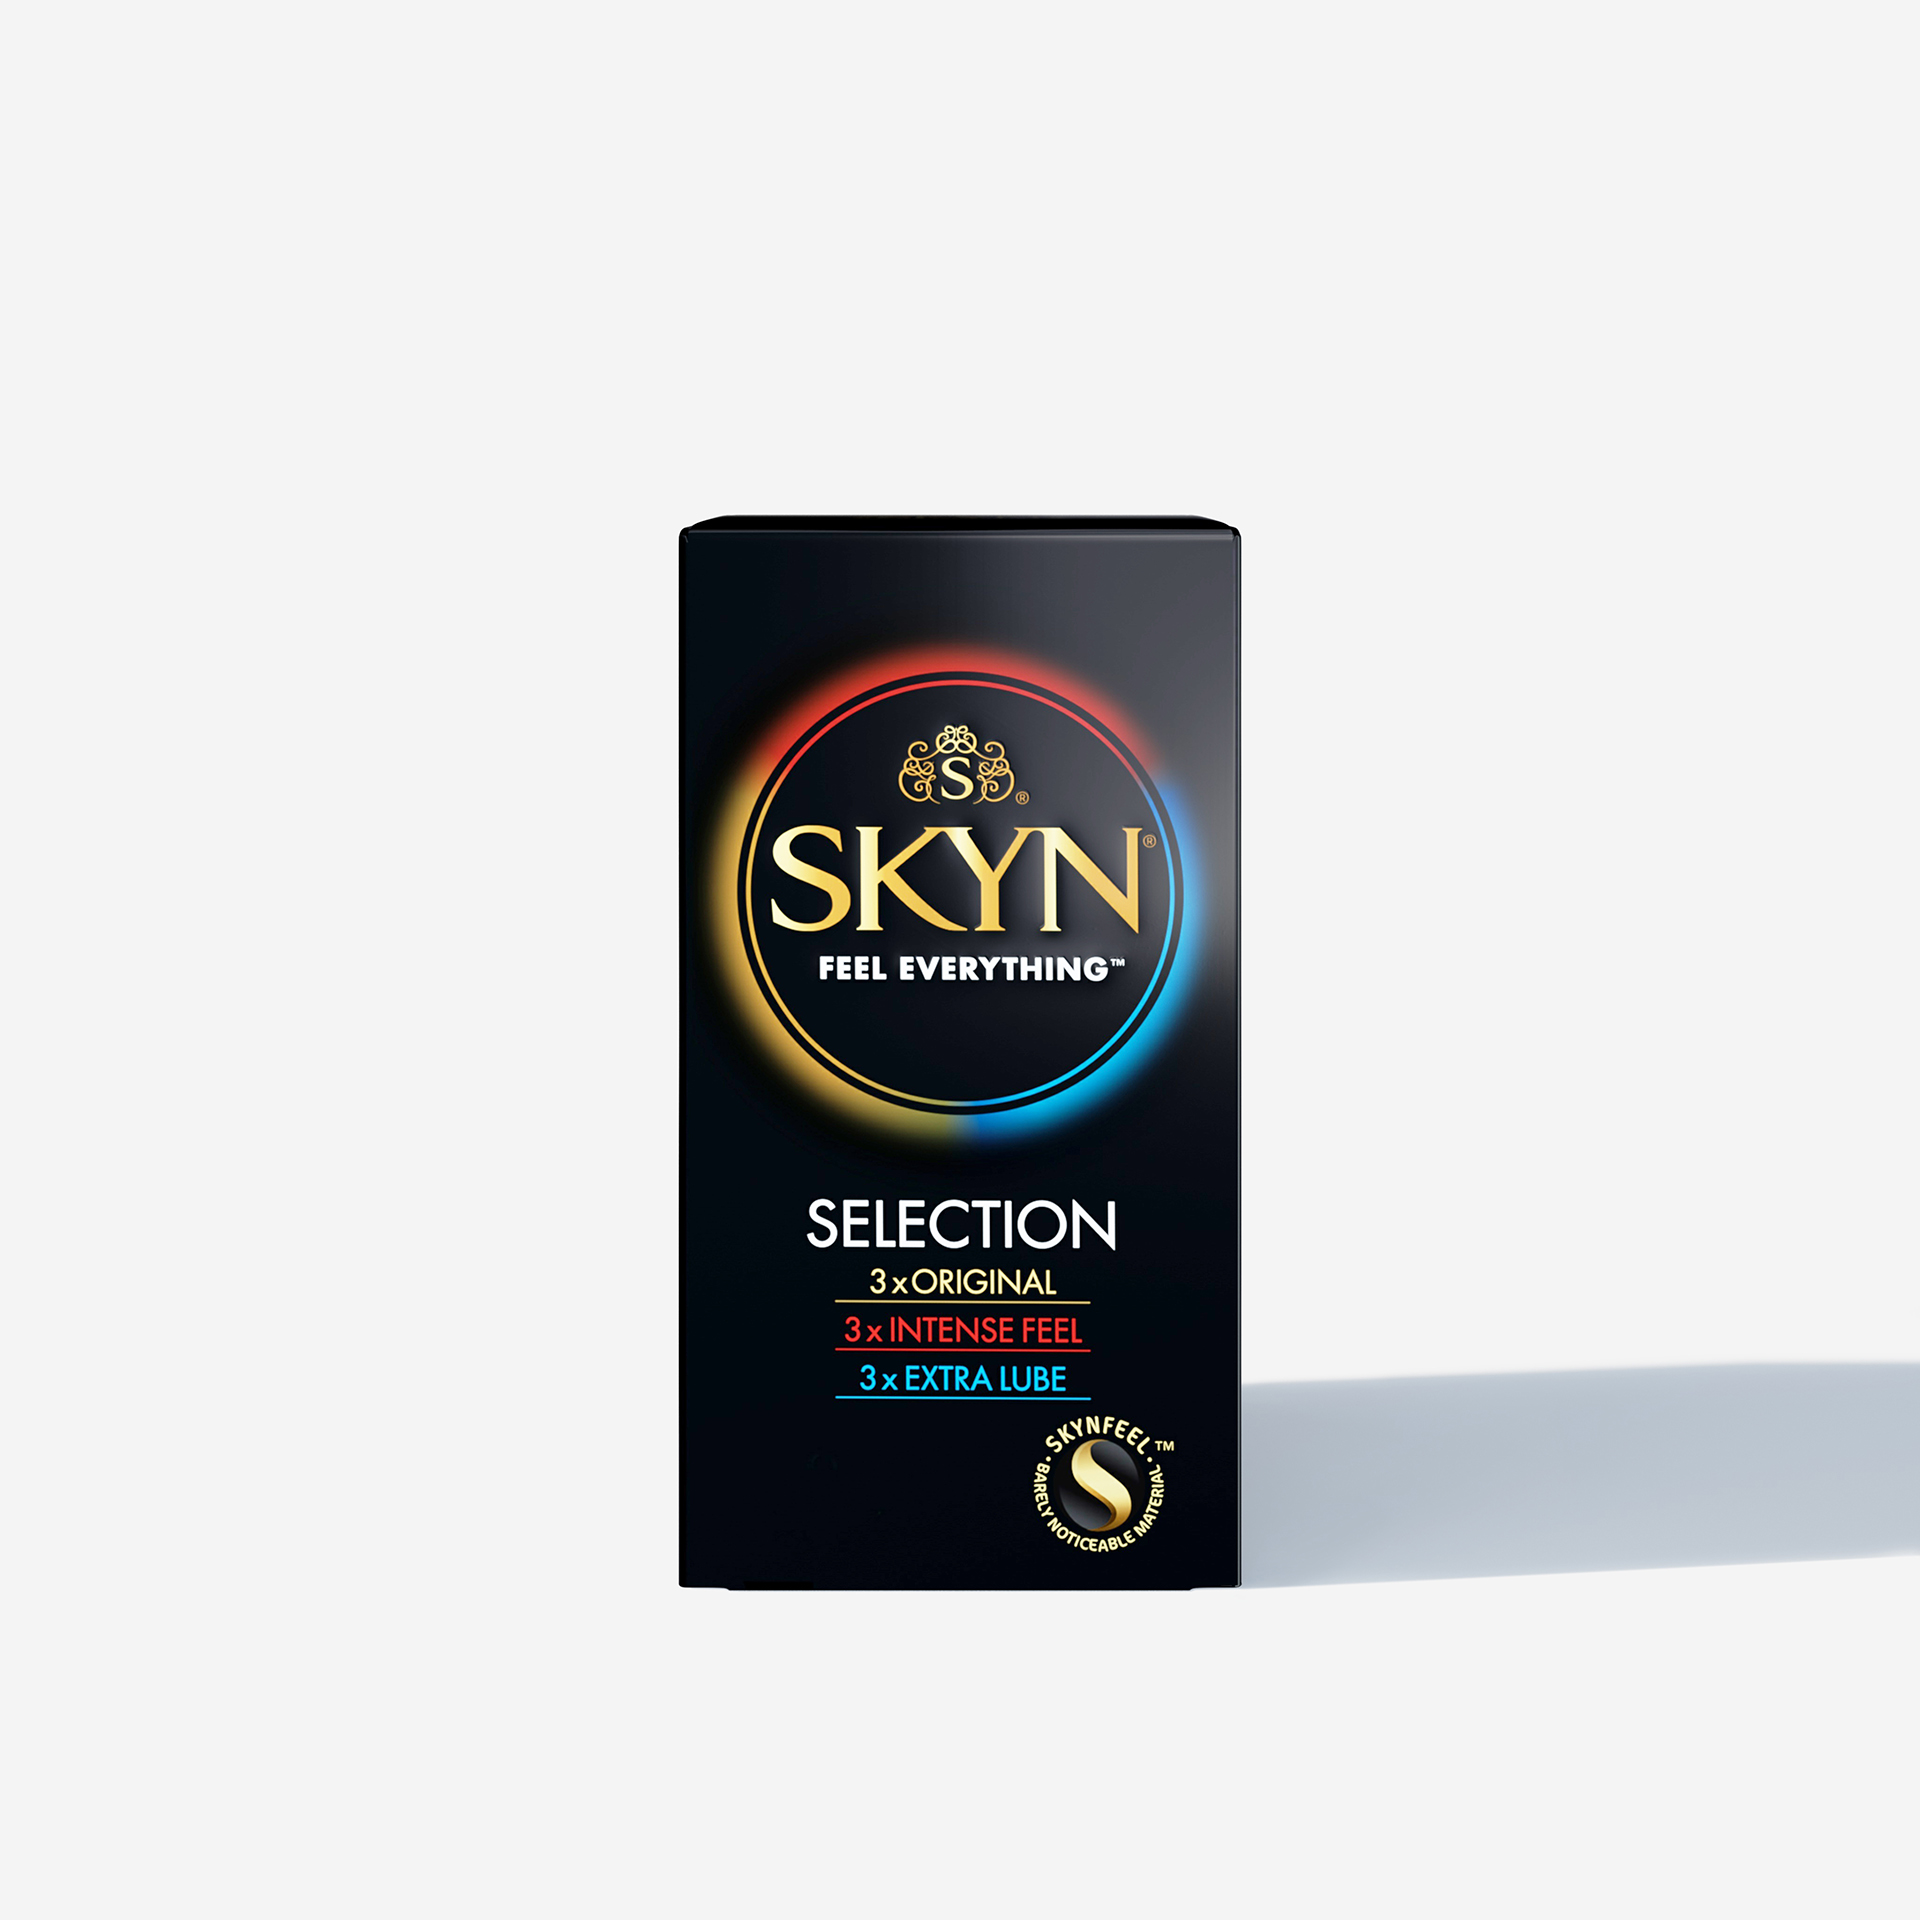 SKYN Selection — Packshot